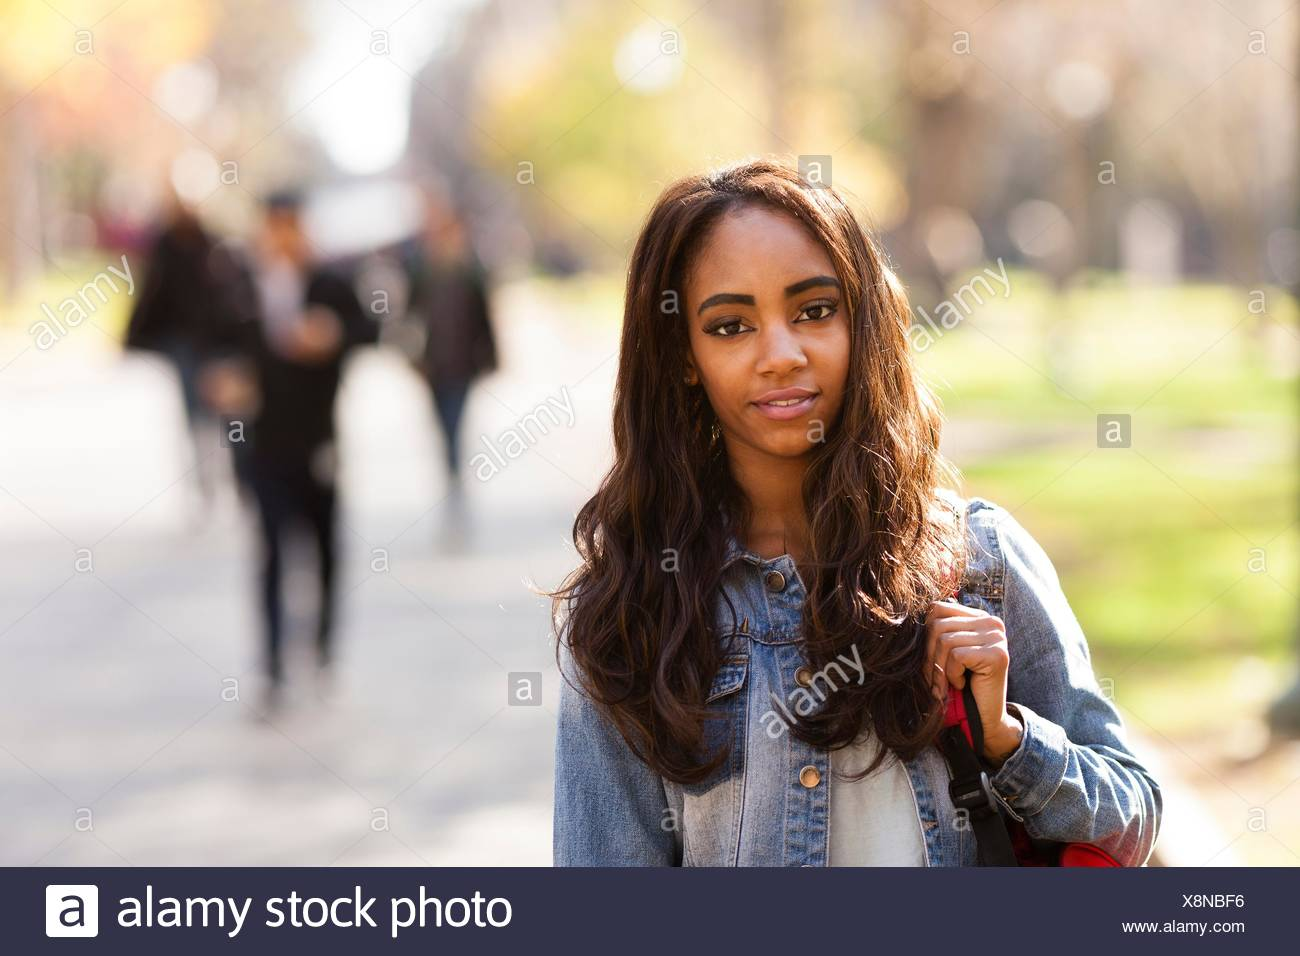 Portrait of young woman with long brown hair wearing denim jacket looking at camera smiling - Stock Image